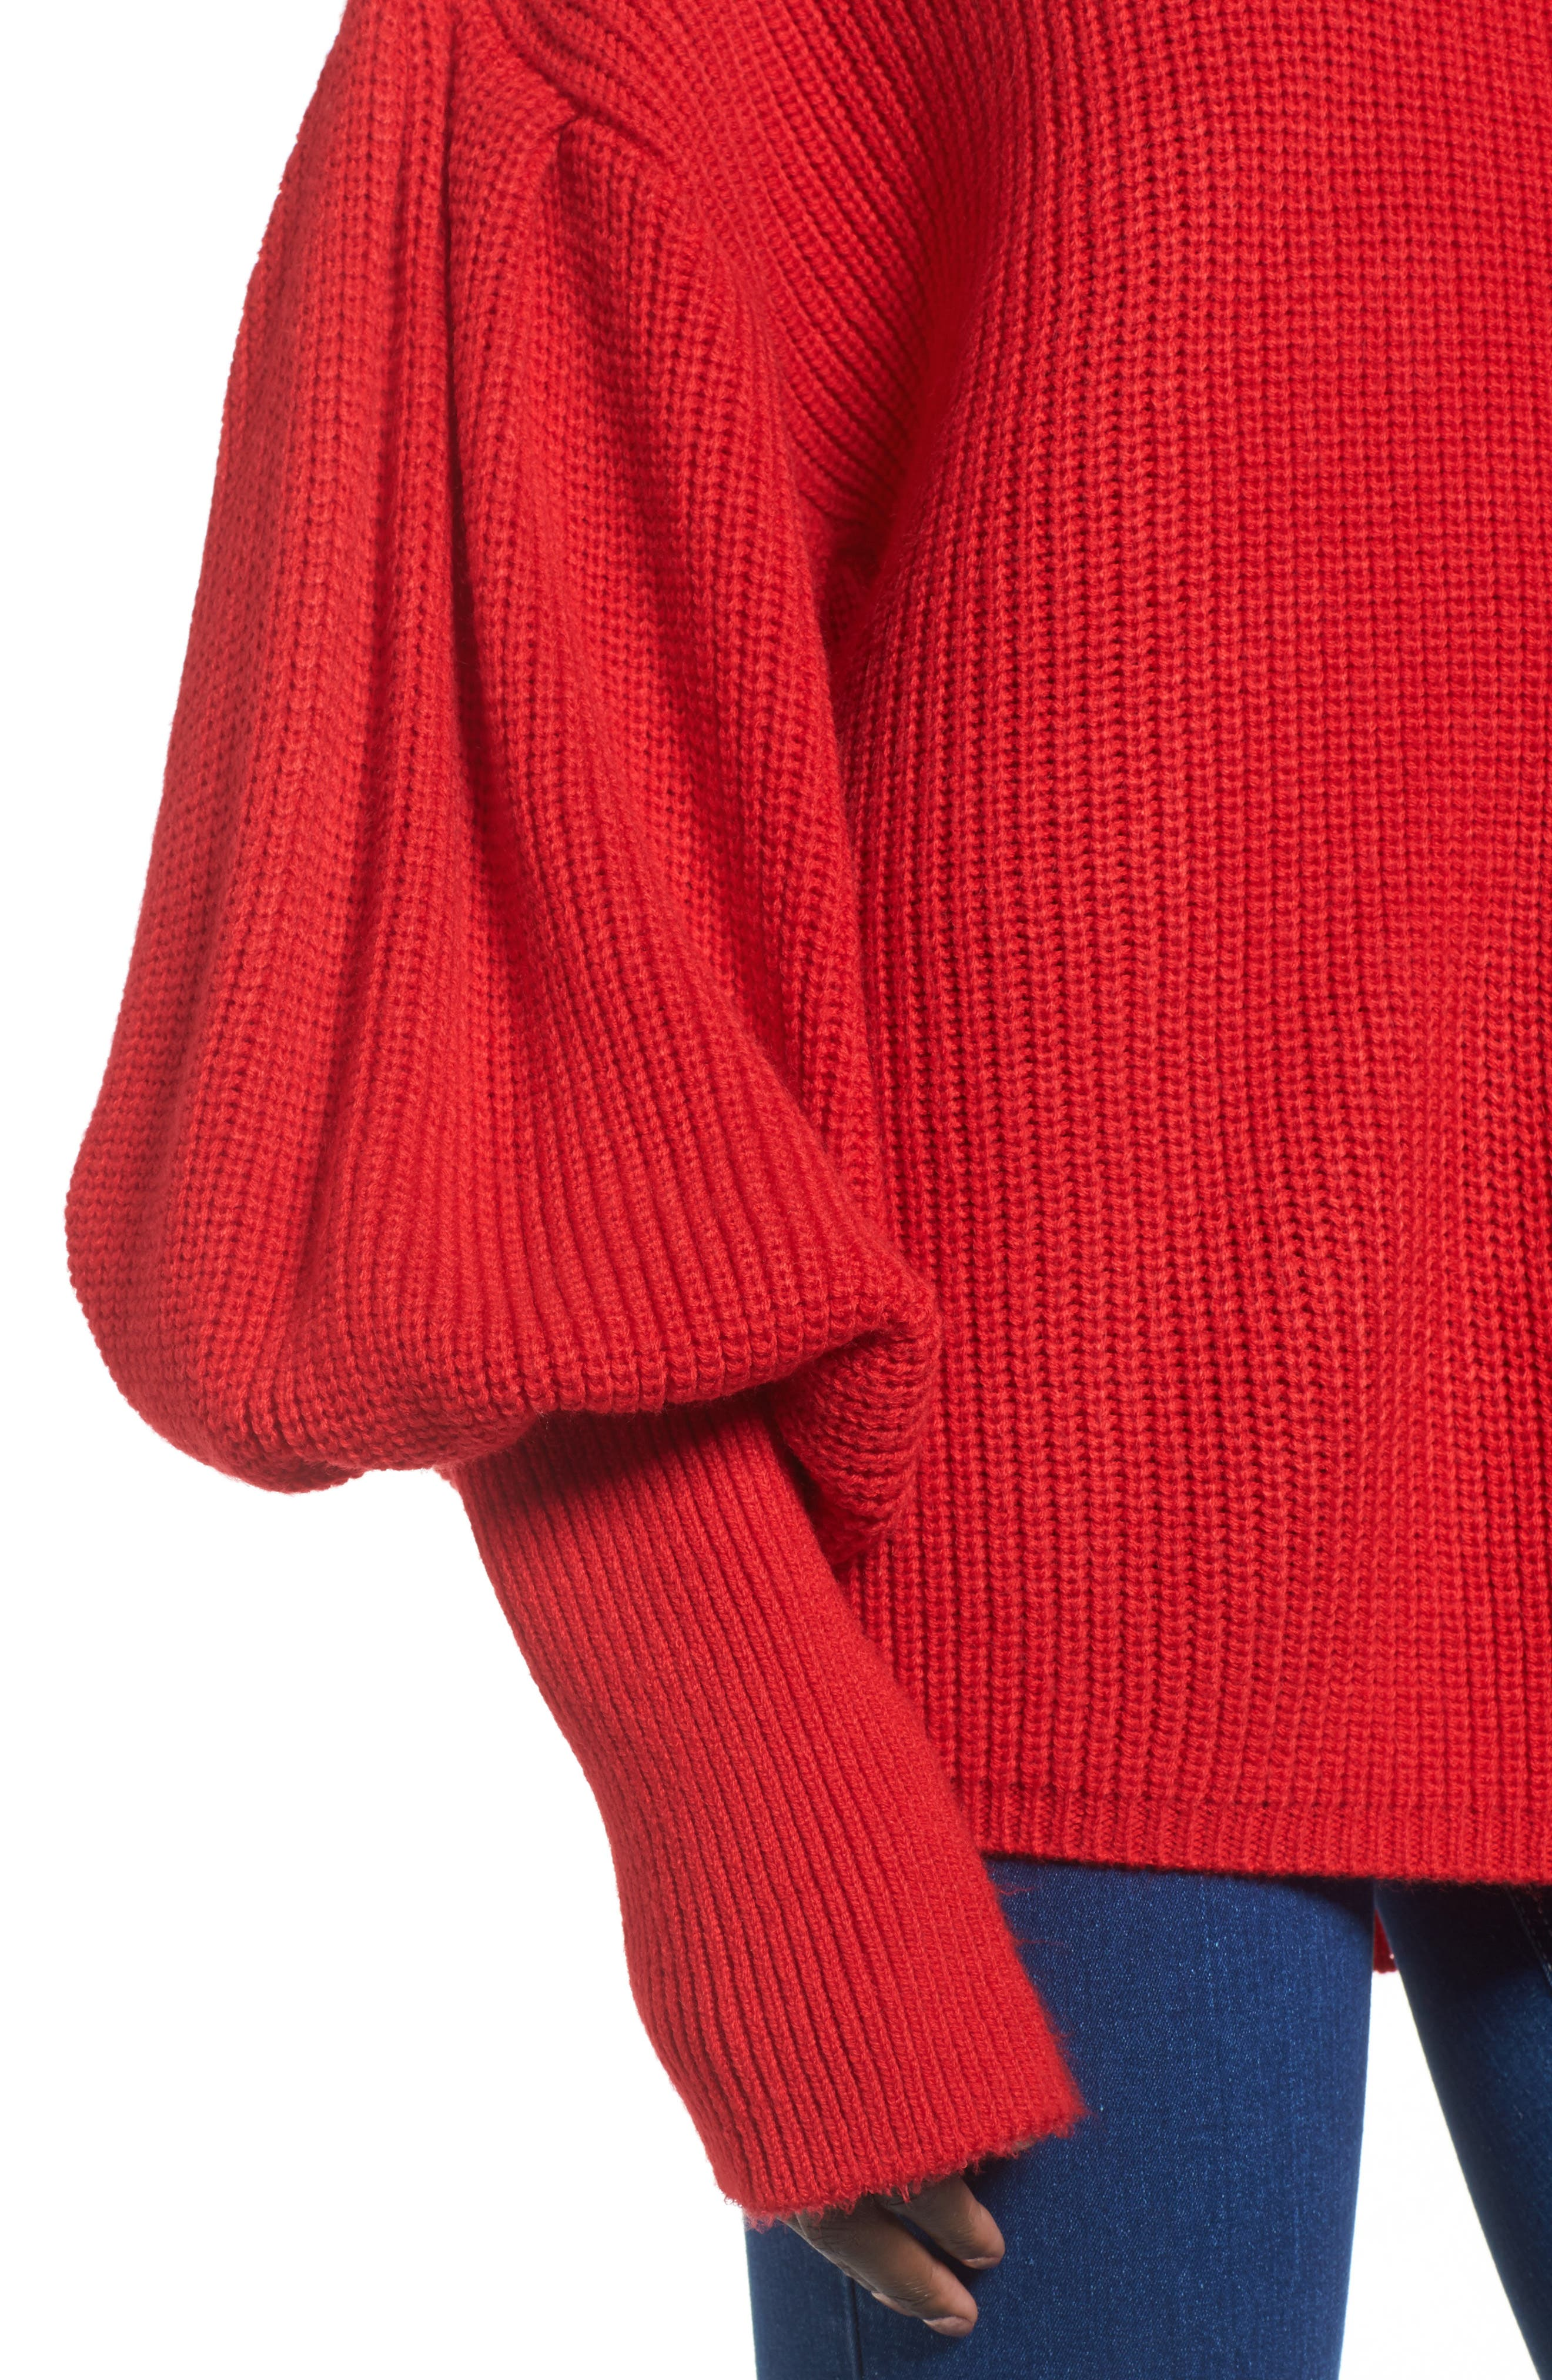 Balloon Sleeve Turtleneck Sweater,                             Alternate thumbnail 6, color,                             Red